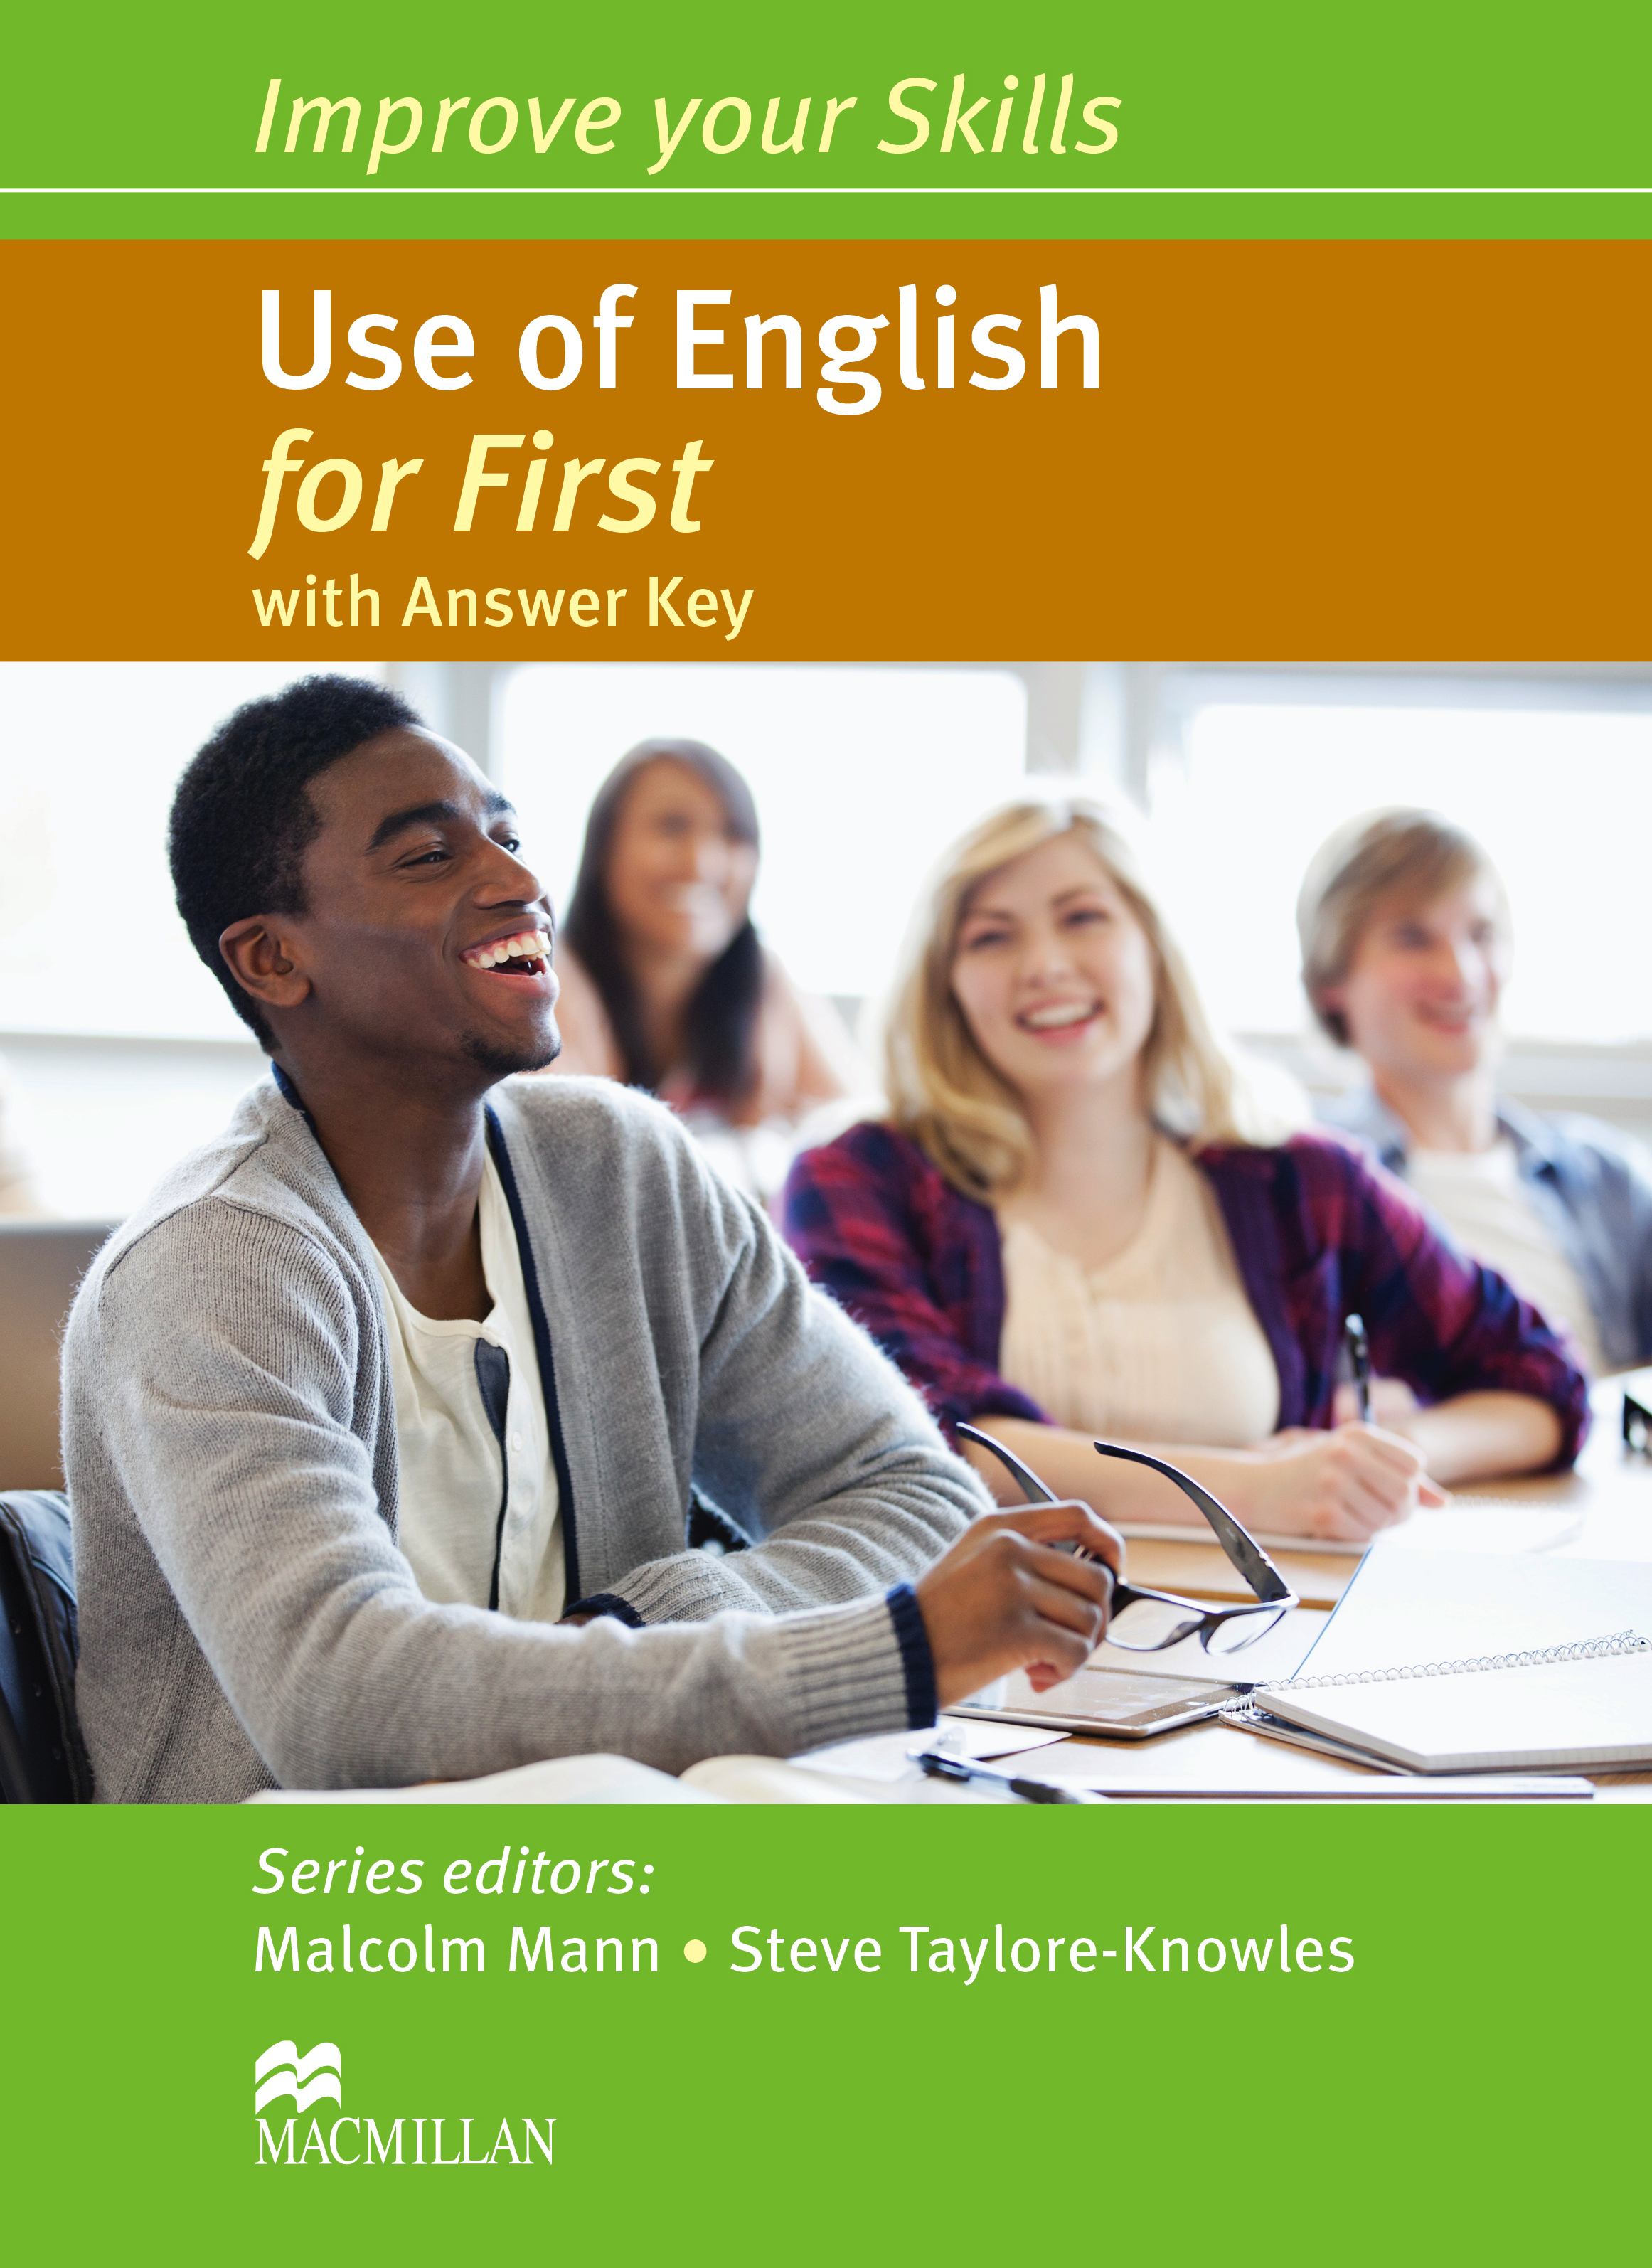 Improve your Skills: Use of English for First Student